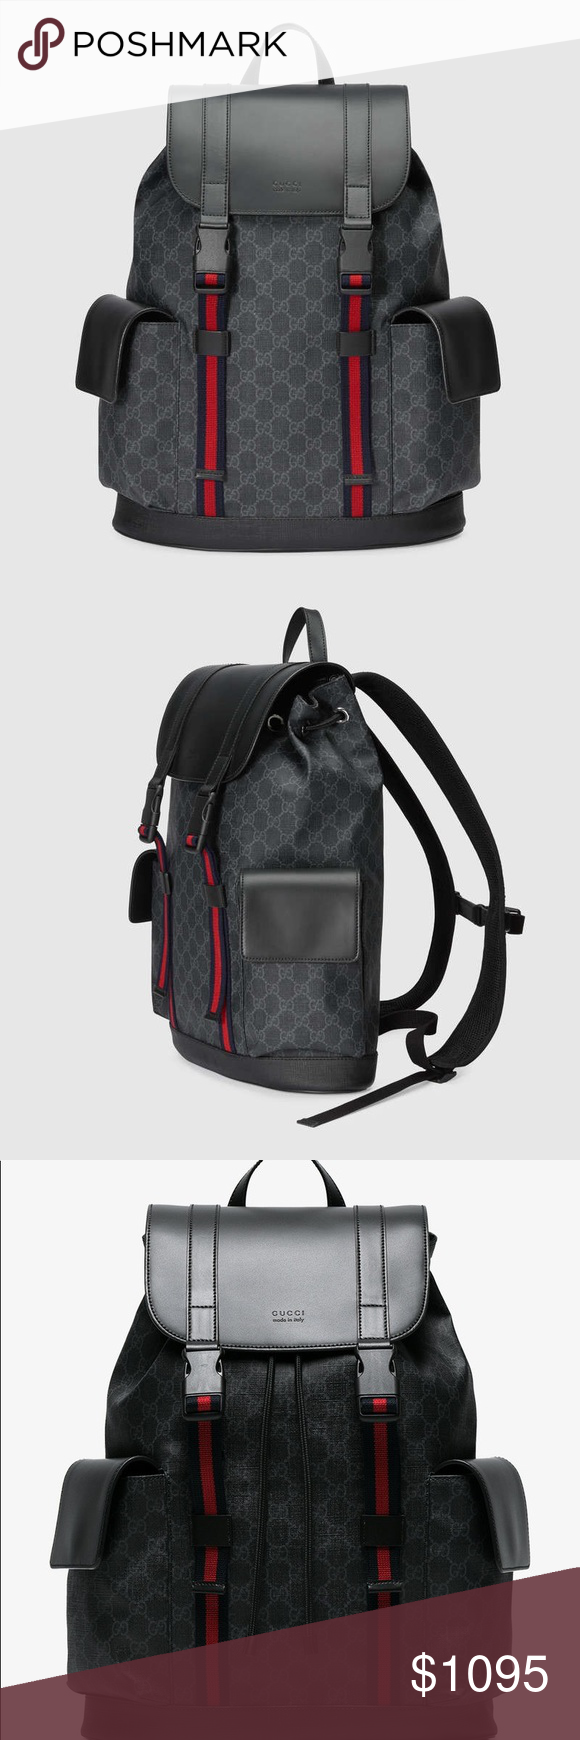 4783c650780 Gucci Soft GG Supreme Backpack Soft GG Supreme backpack 100% Authentic  Serial number   450958